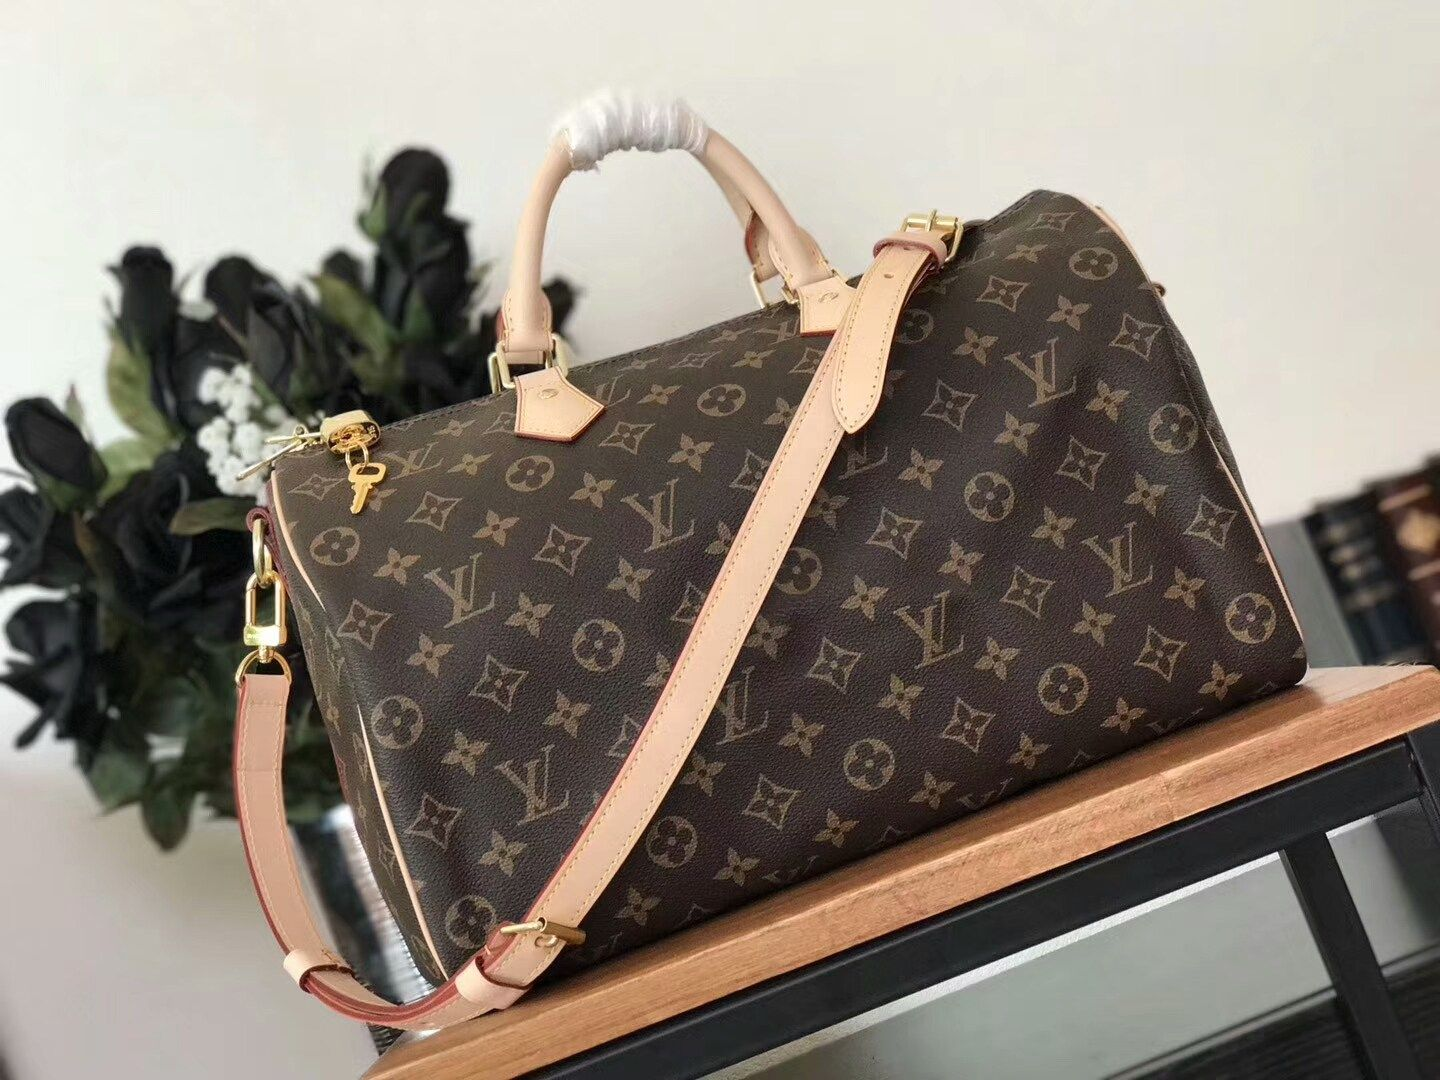 Replica Louis Vuitton Handbags